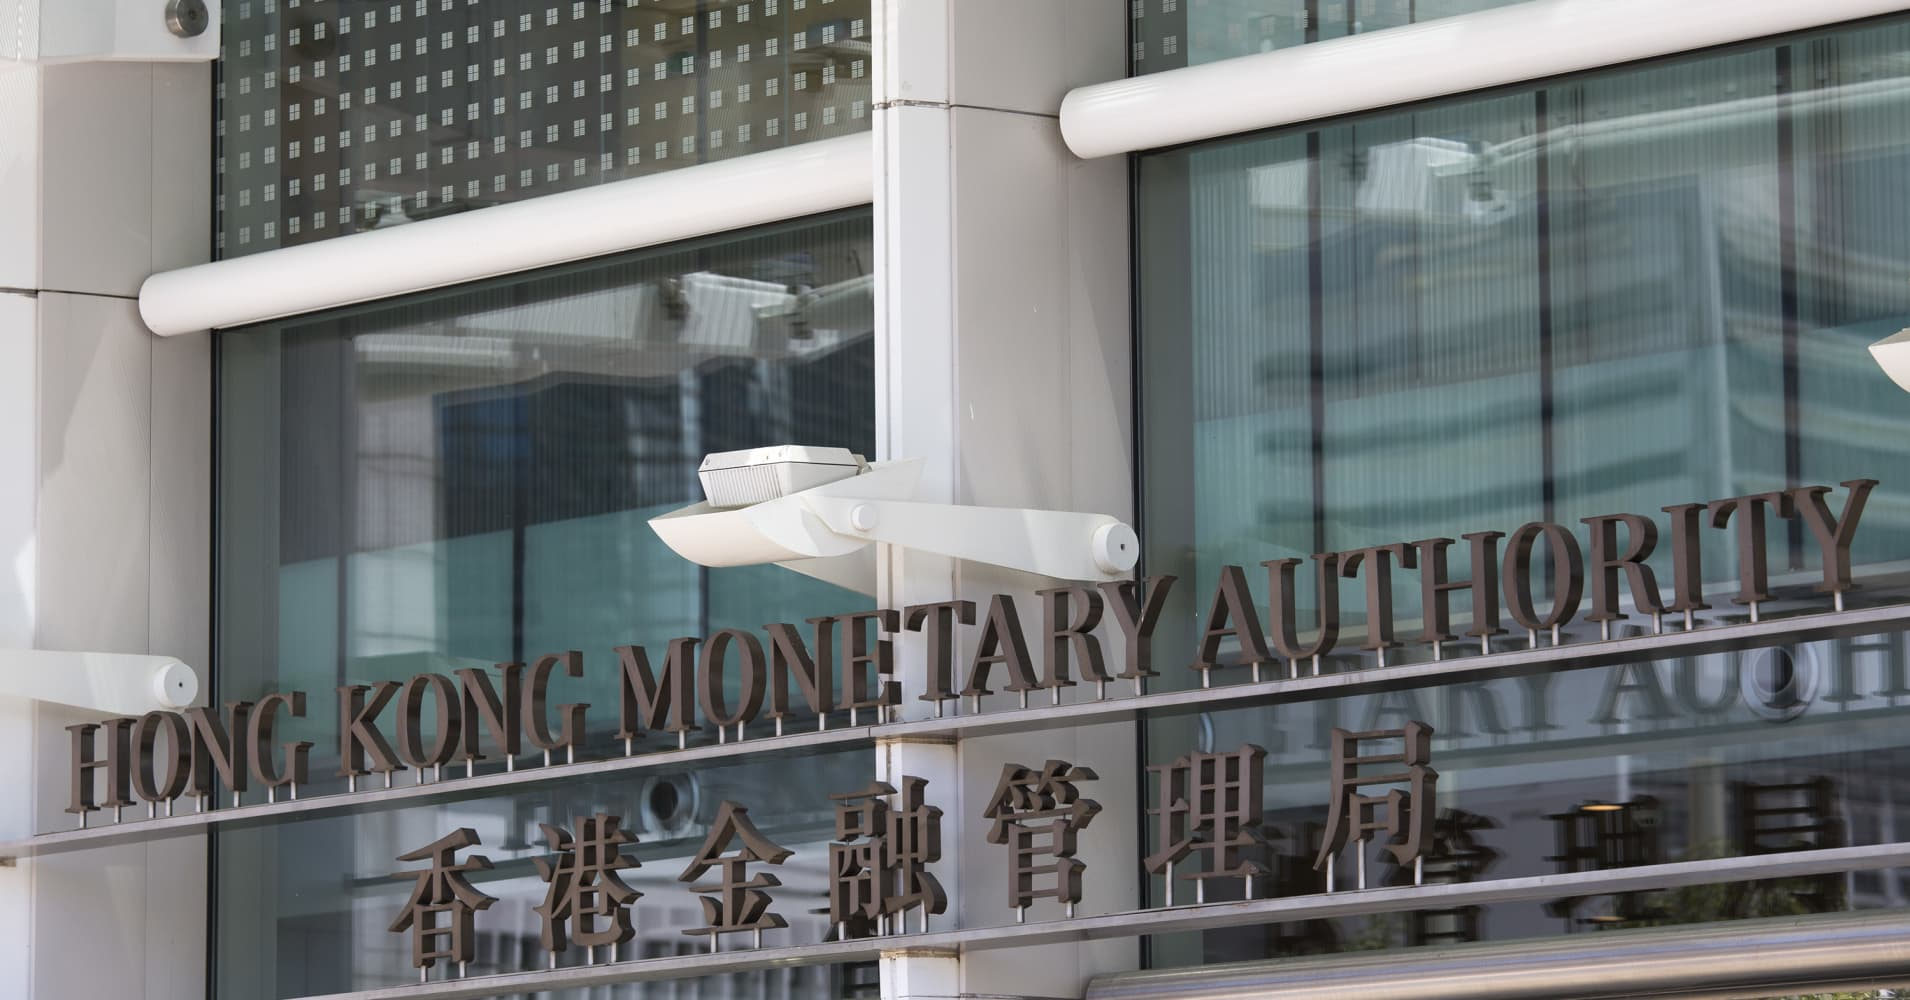 The Hong Kong Monetary Authority is displayed outside Two International Finance Centre in Hong Kong on June 19, 2013.